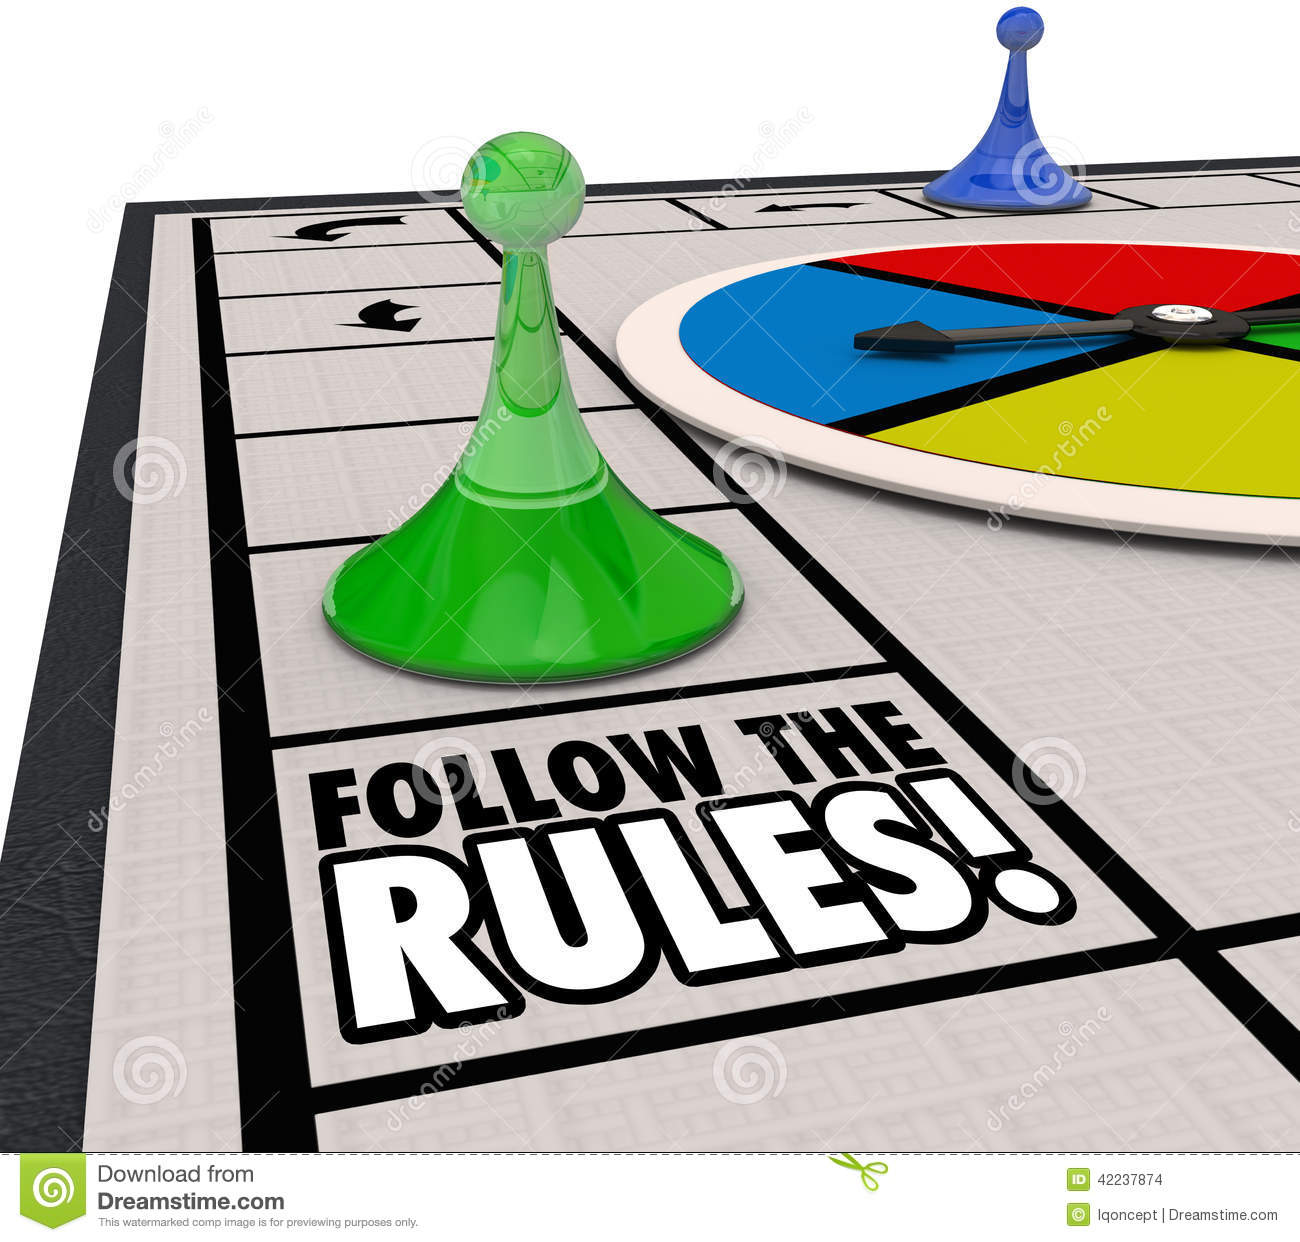 Game rules clipart.